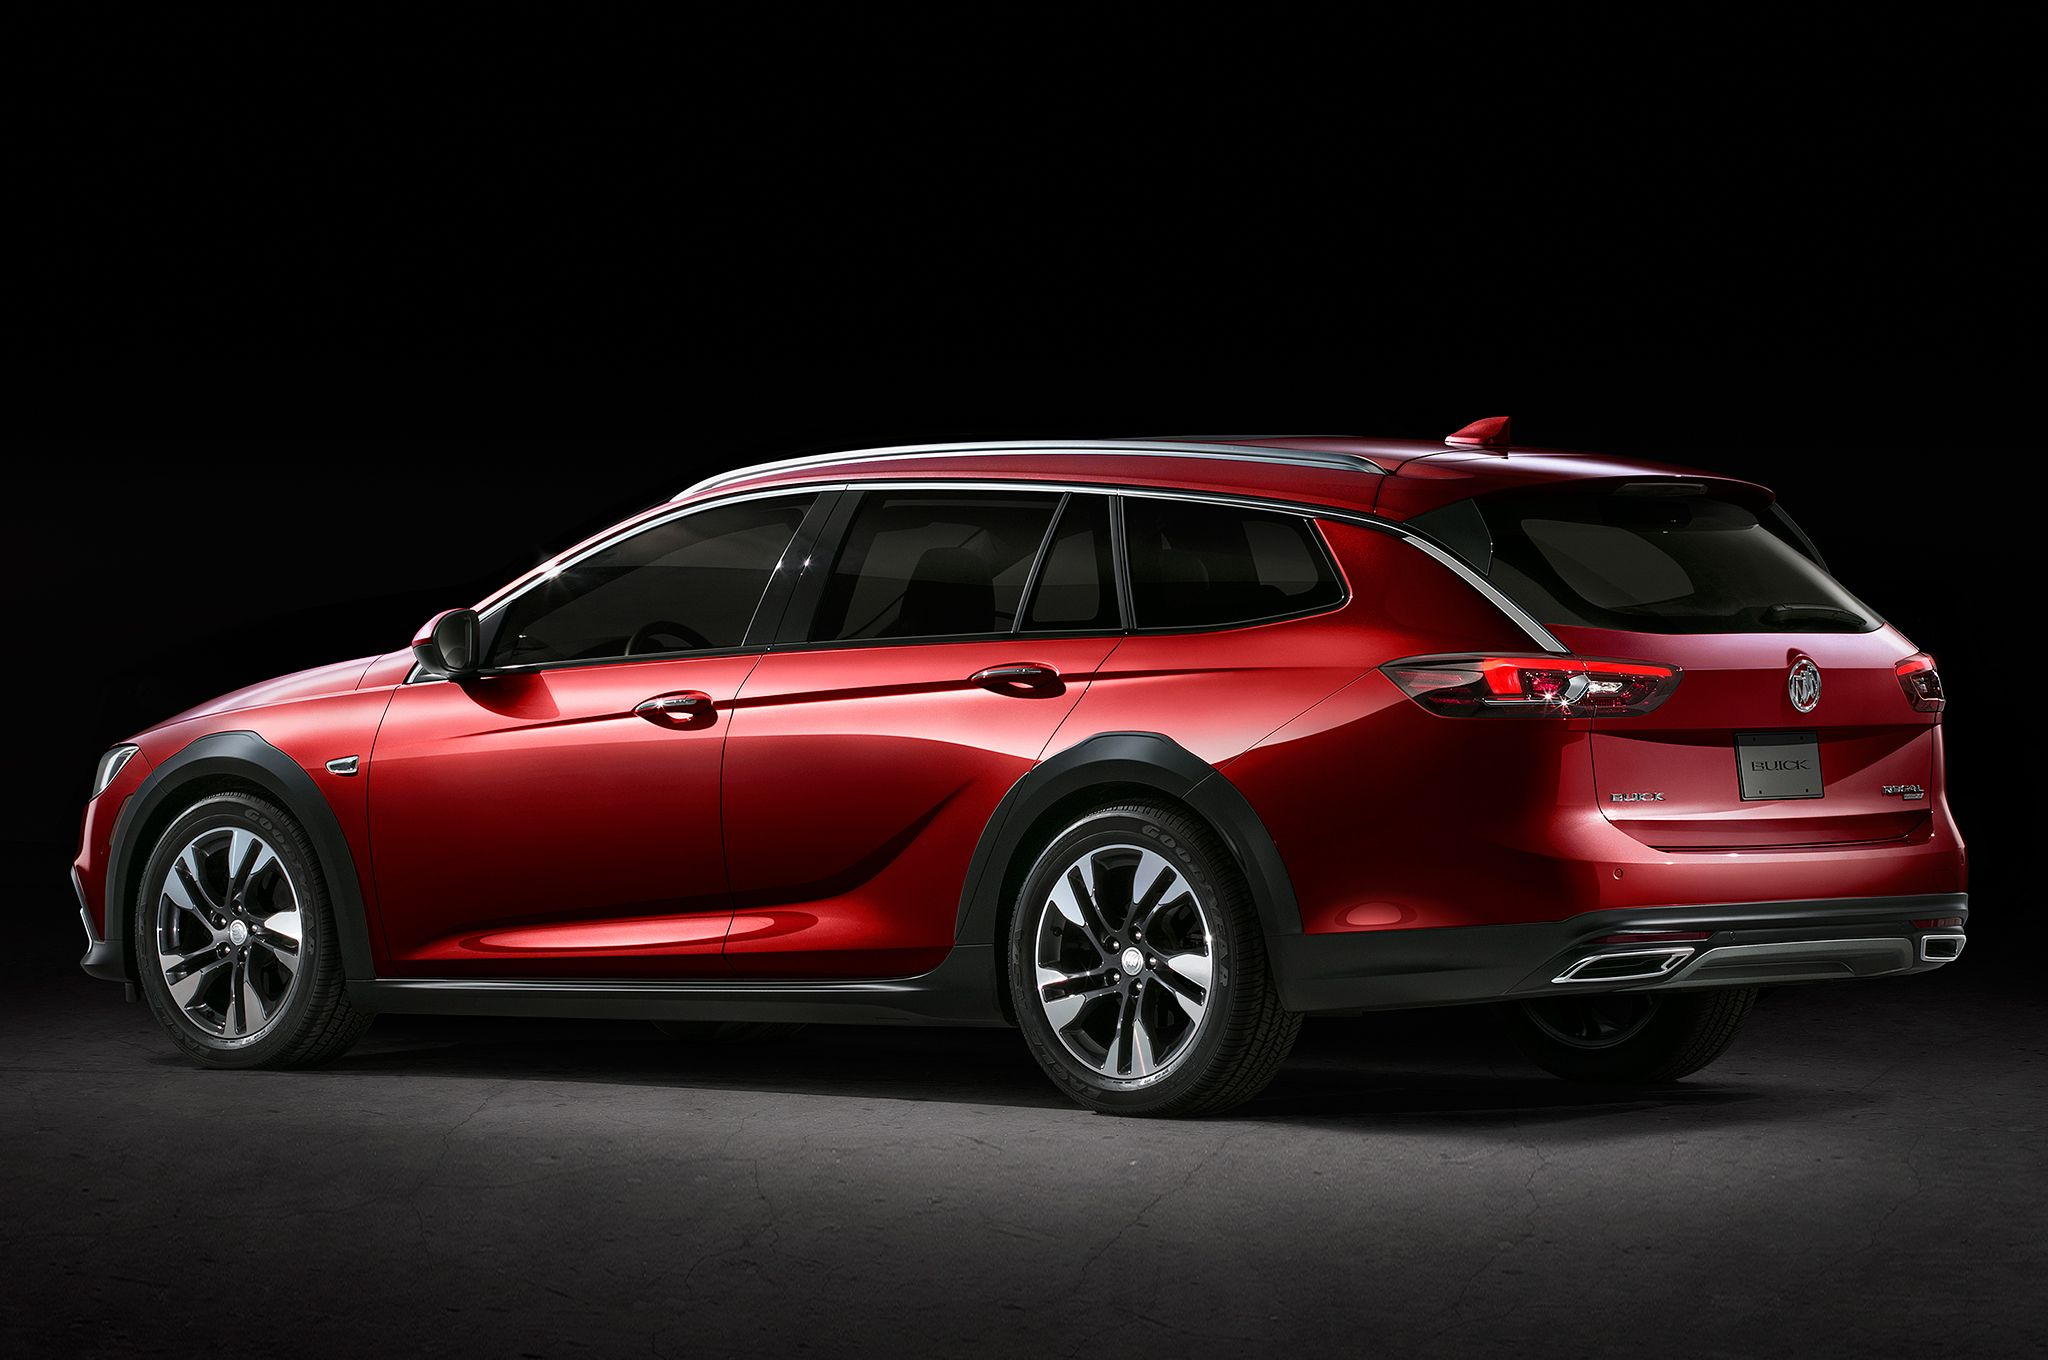 2018 buick regal wagon or gs - 2018 cars release 2019 | buick